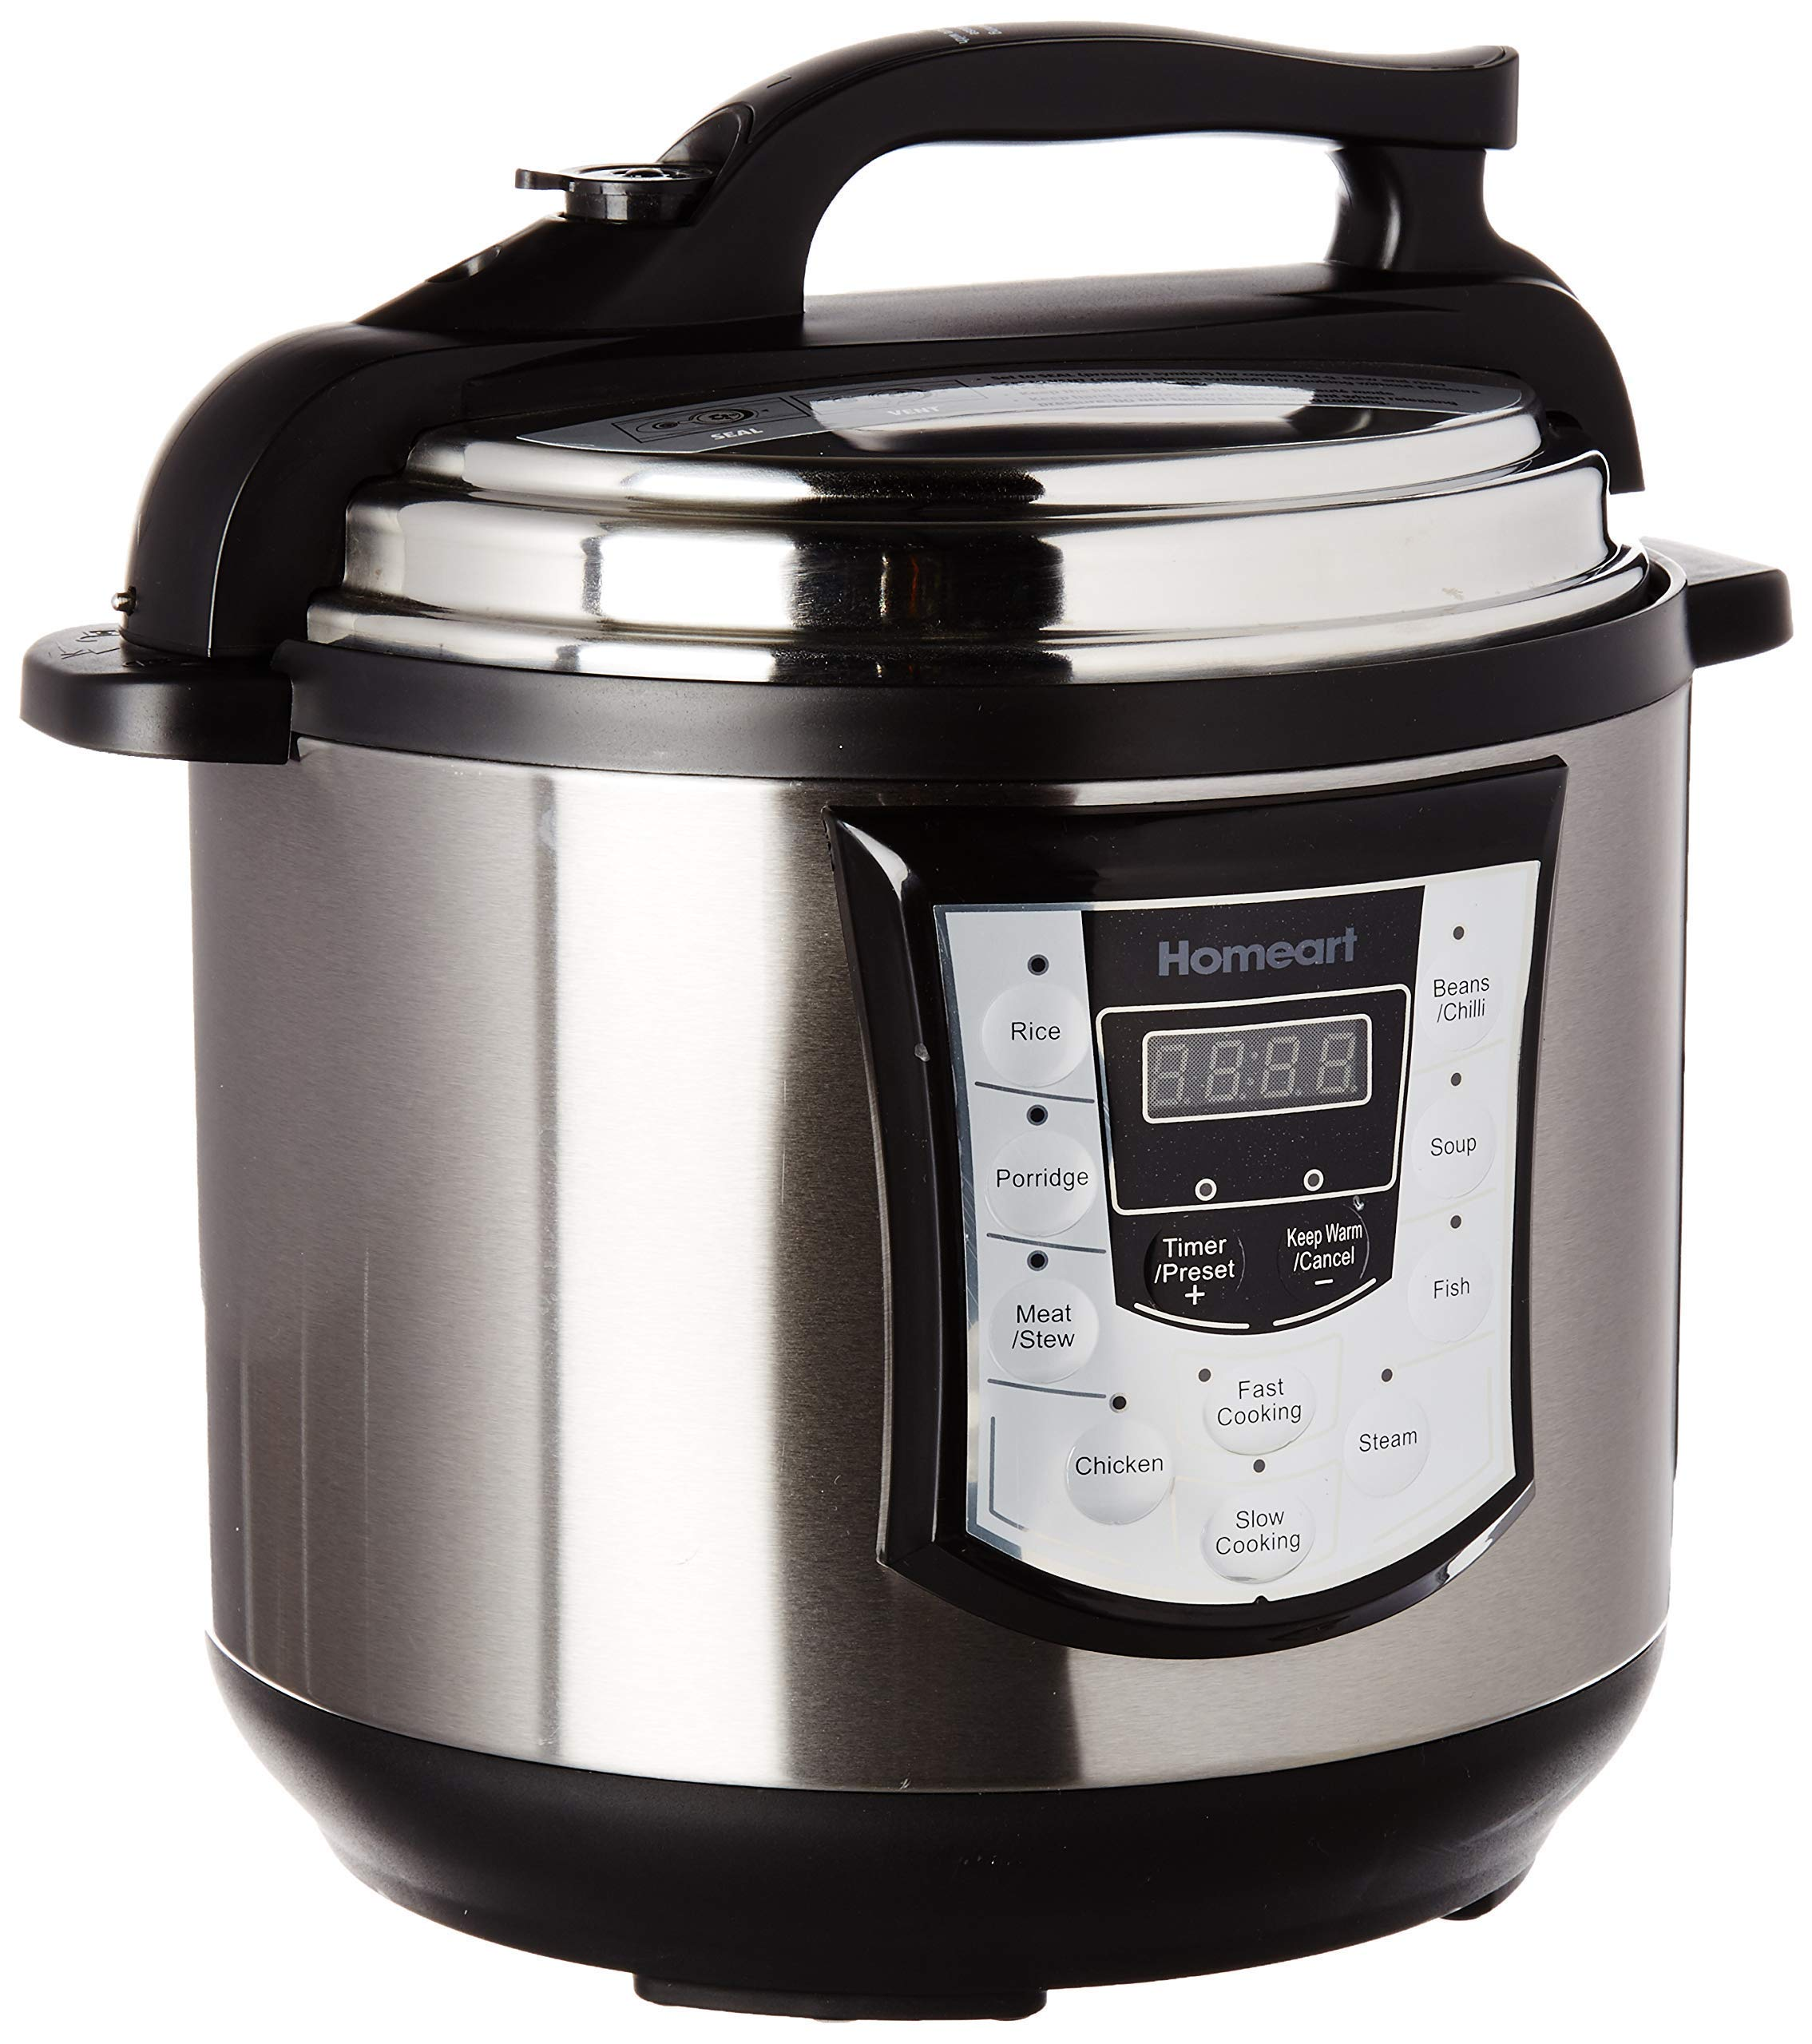 Multipot by Homeart | Best 2019 Multi Pot | Pressure Cooker Over 6QT and Programmable Settings with Multifunctions